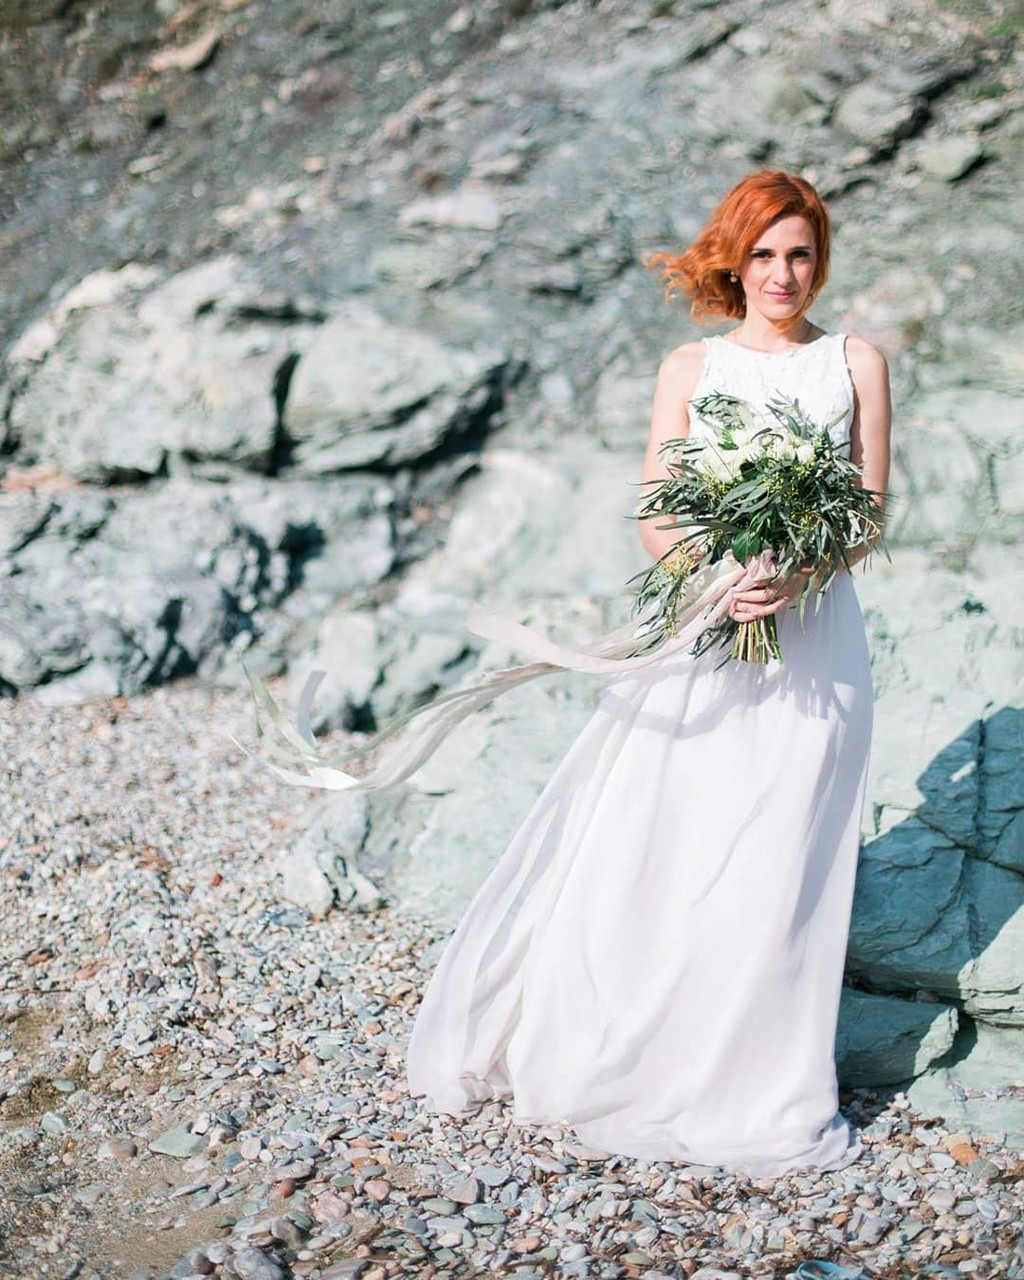 ▪Spotted bride to be captured by the sea in Greece, somewhere between myth and beauty by